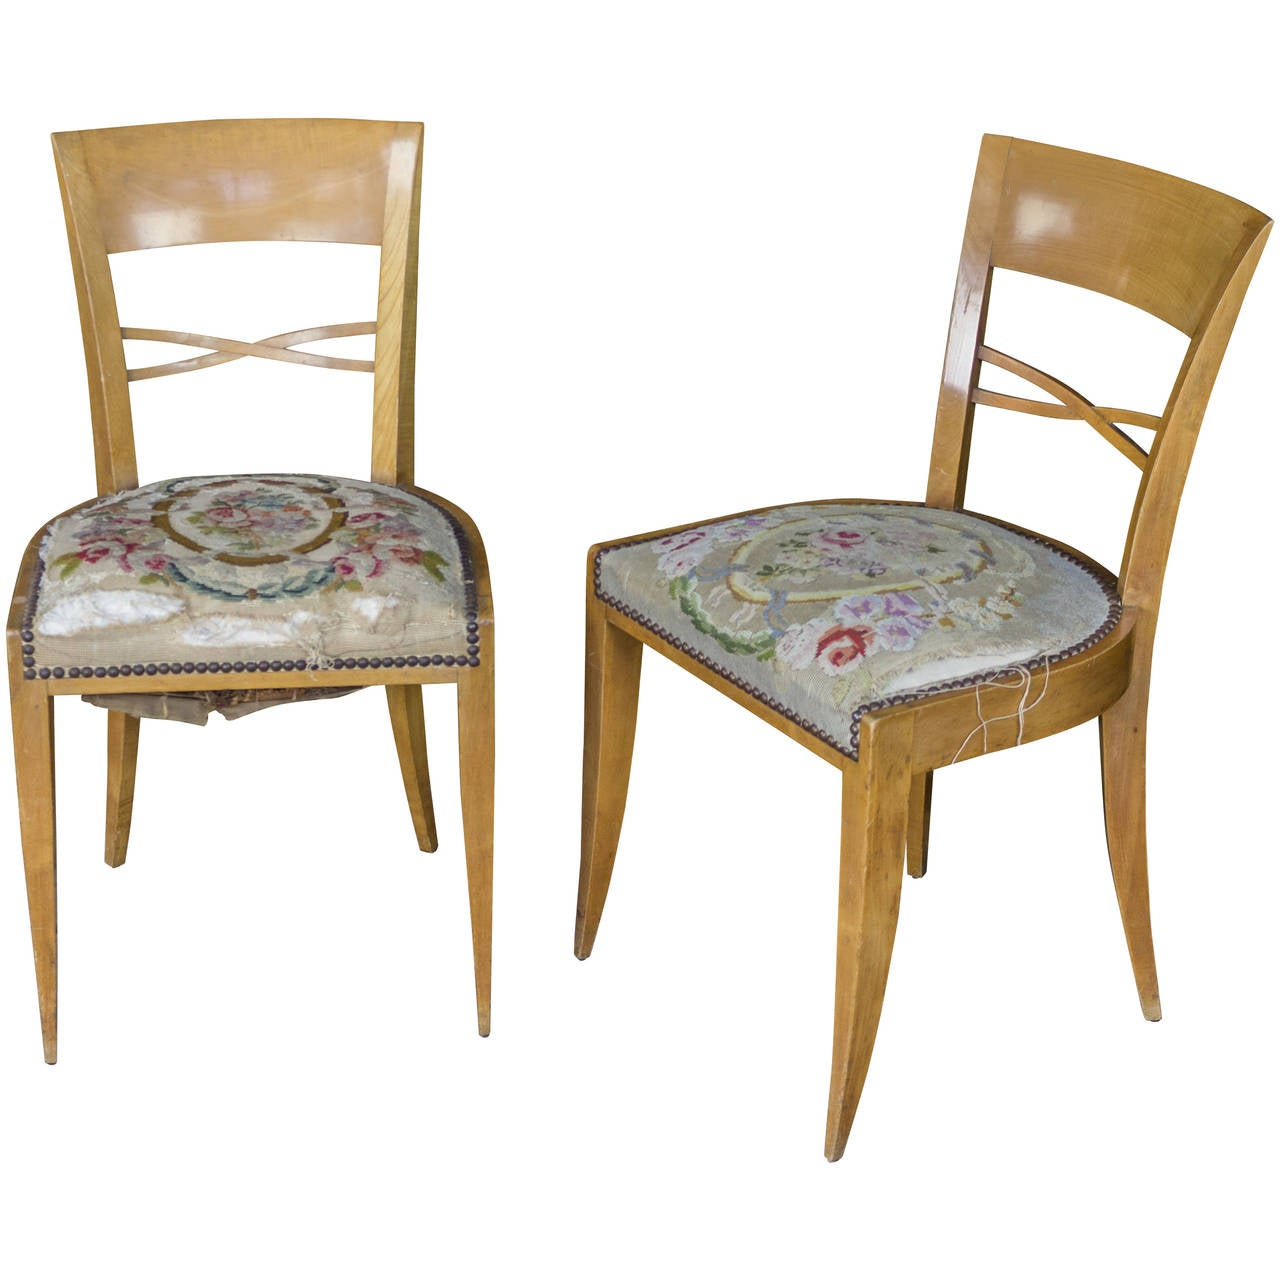 Pair of French Side Chairs with Embroidered Seats